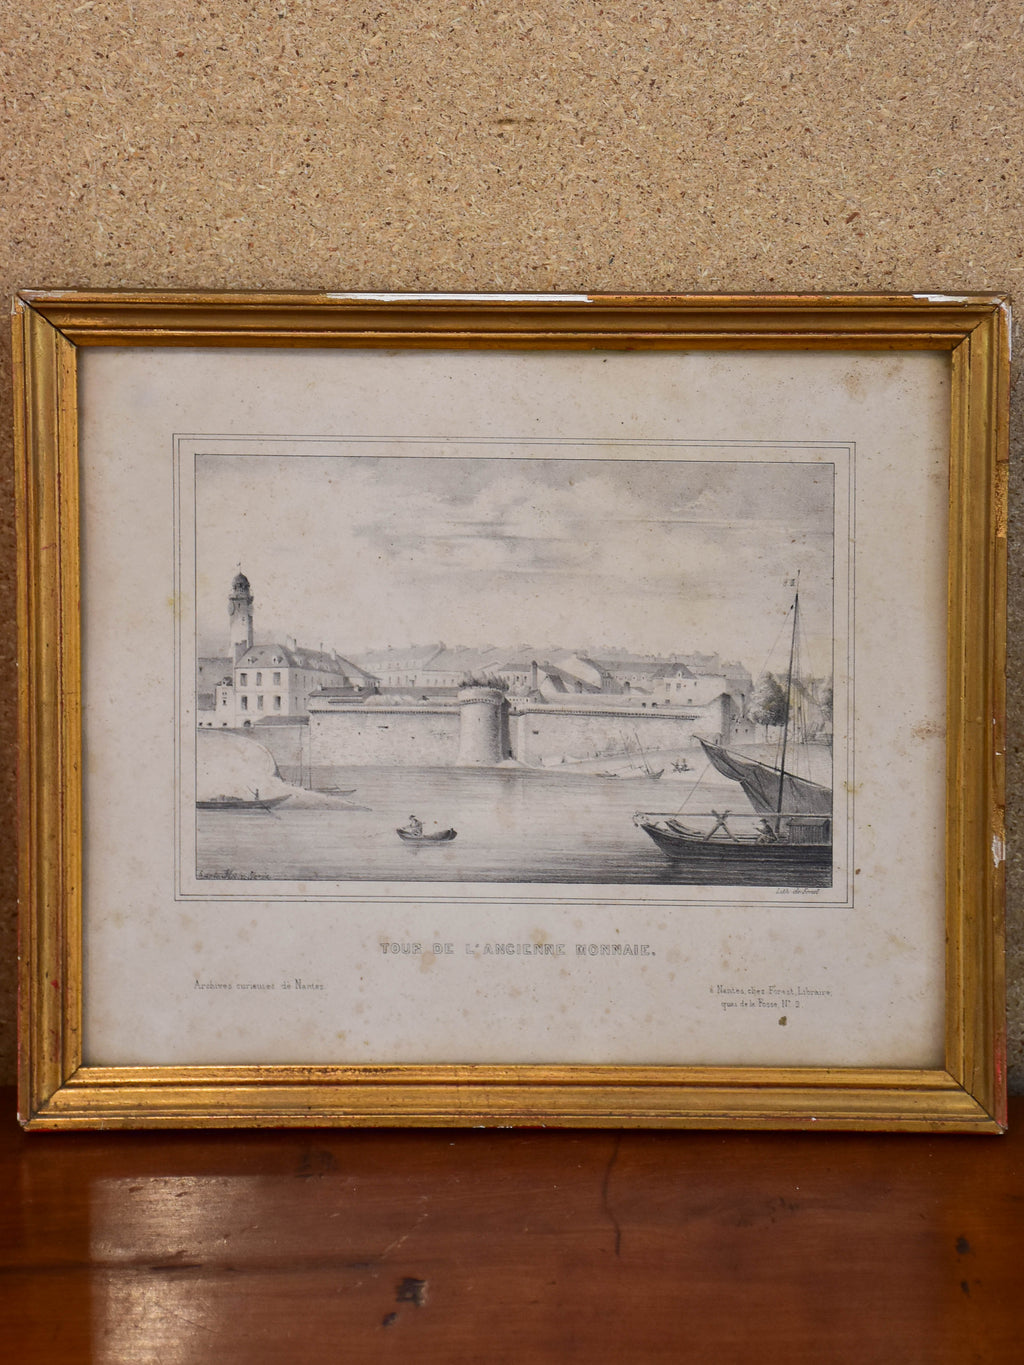 19th century French etching - Nantes